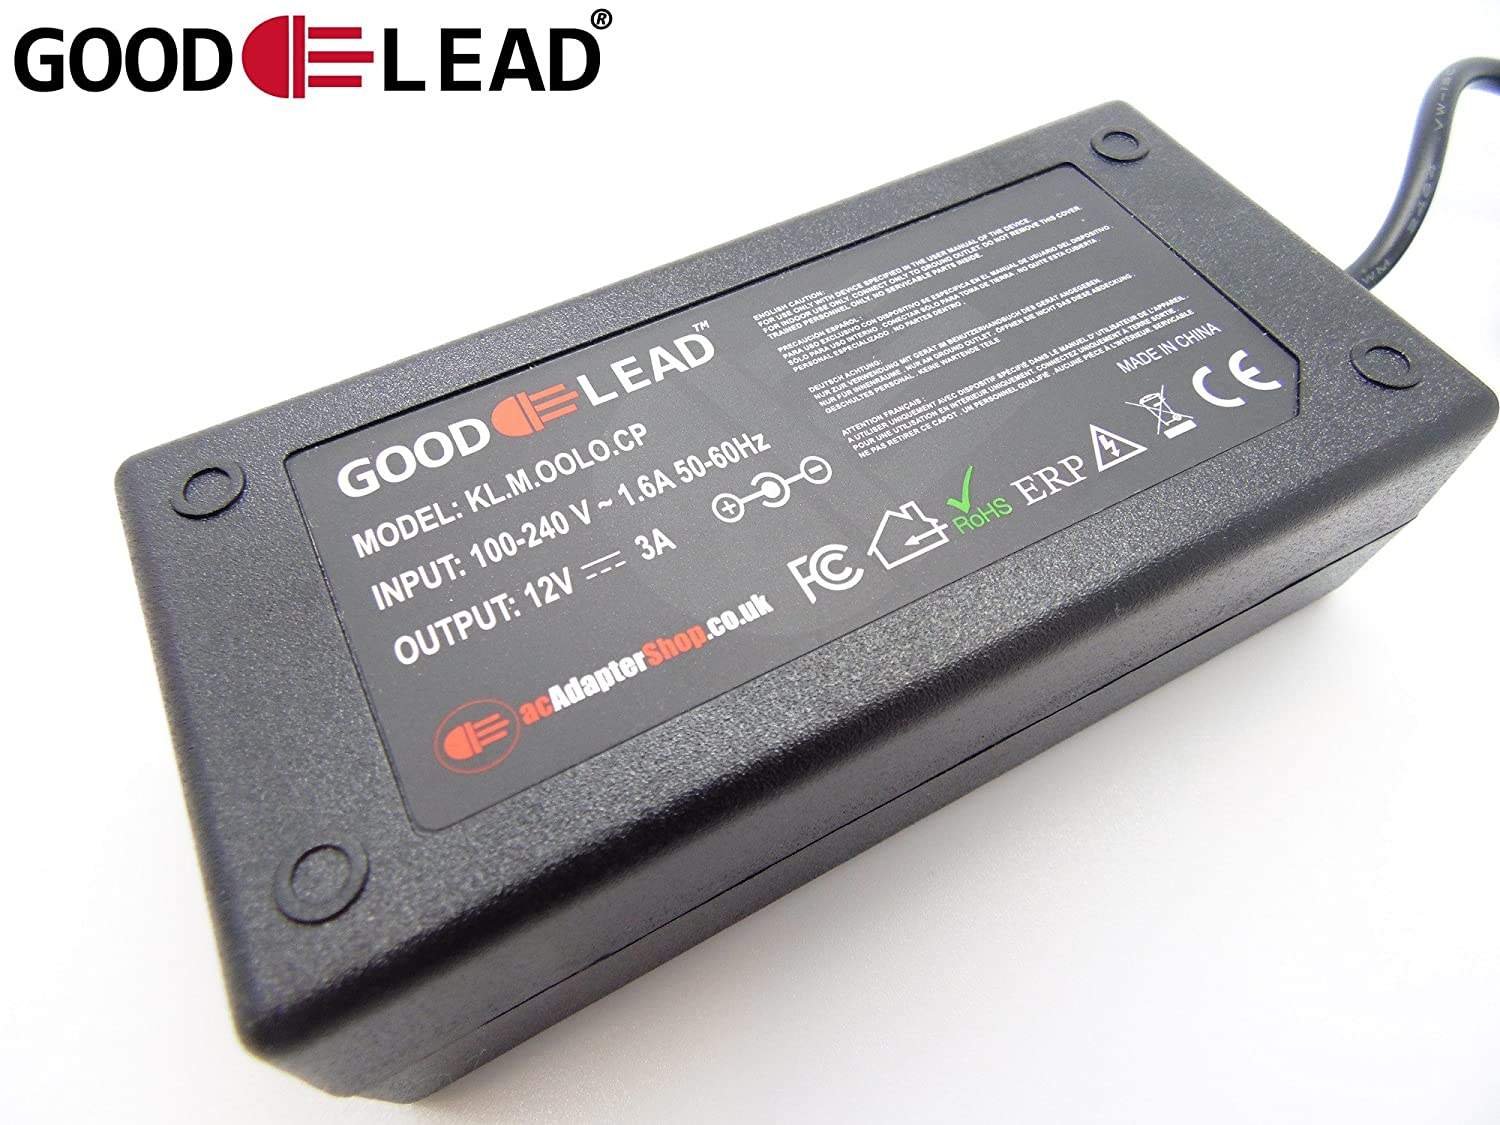 GOOD LEAD 12V 2A Mains AC DC Adapter Power Supply For BT YouView Humax DTR T2100 Box NEW